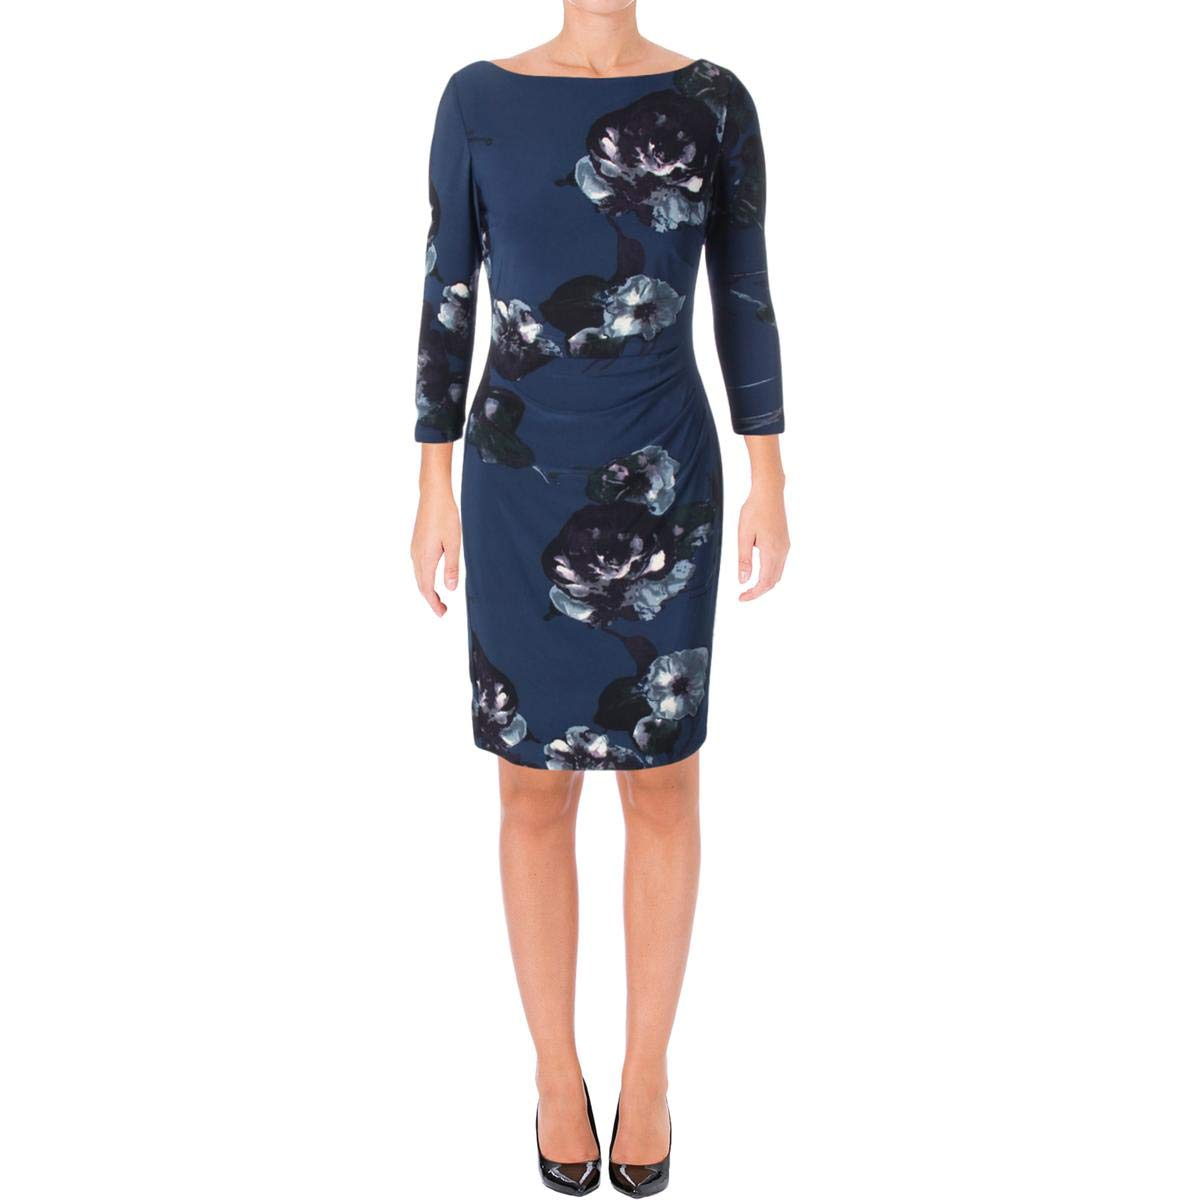 Lauren Ralph Lauren Womens Ruched Side Floral Print Wear to Work Dress bluee 4